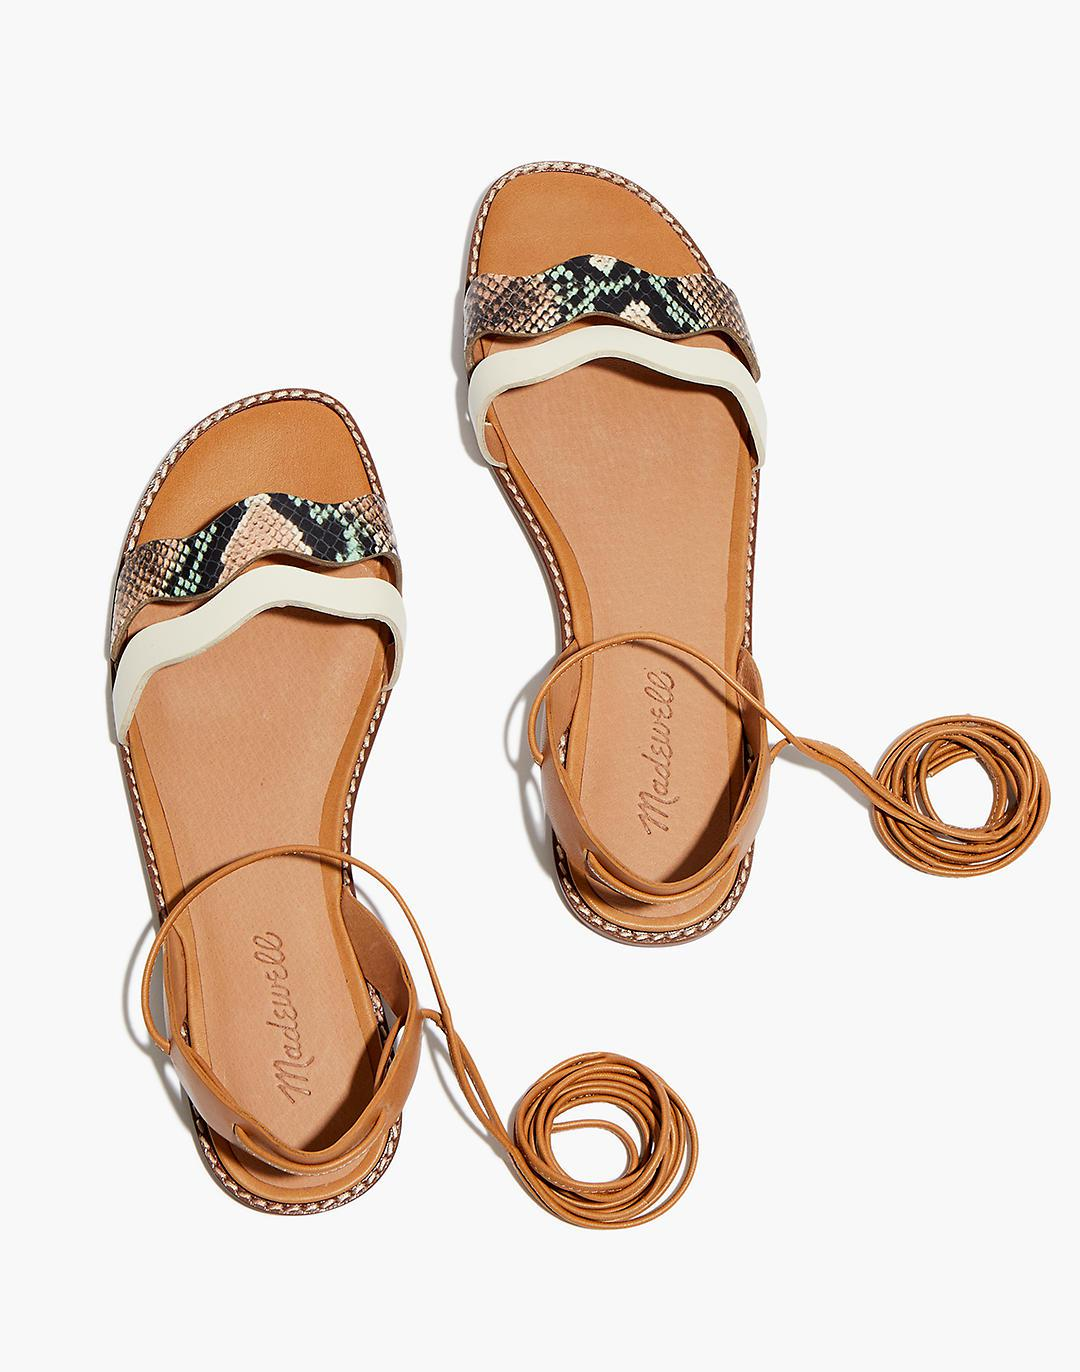 The Wave Lace-Up Sandal in Colorblock Snake Embossed Leather